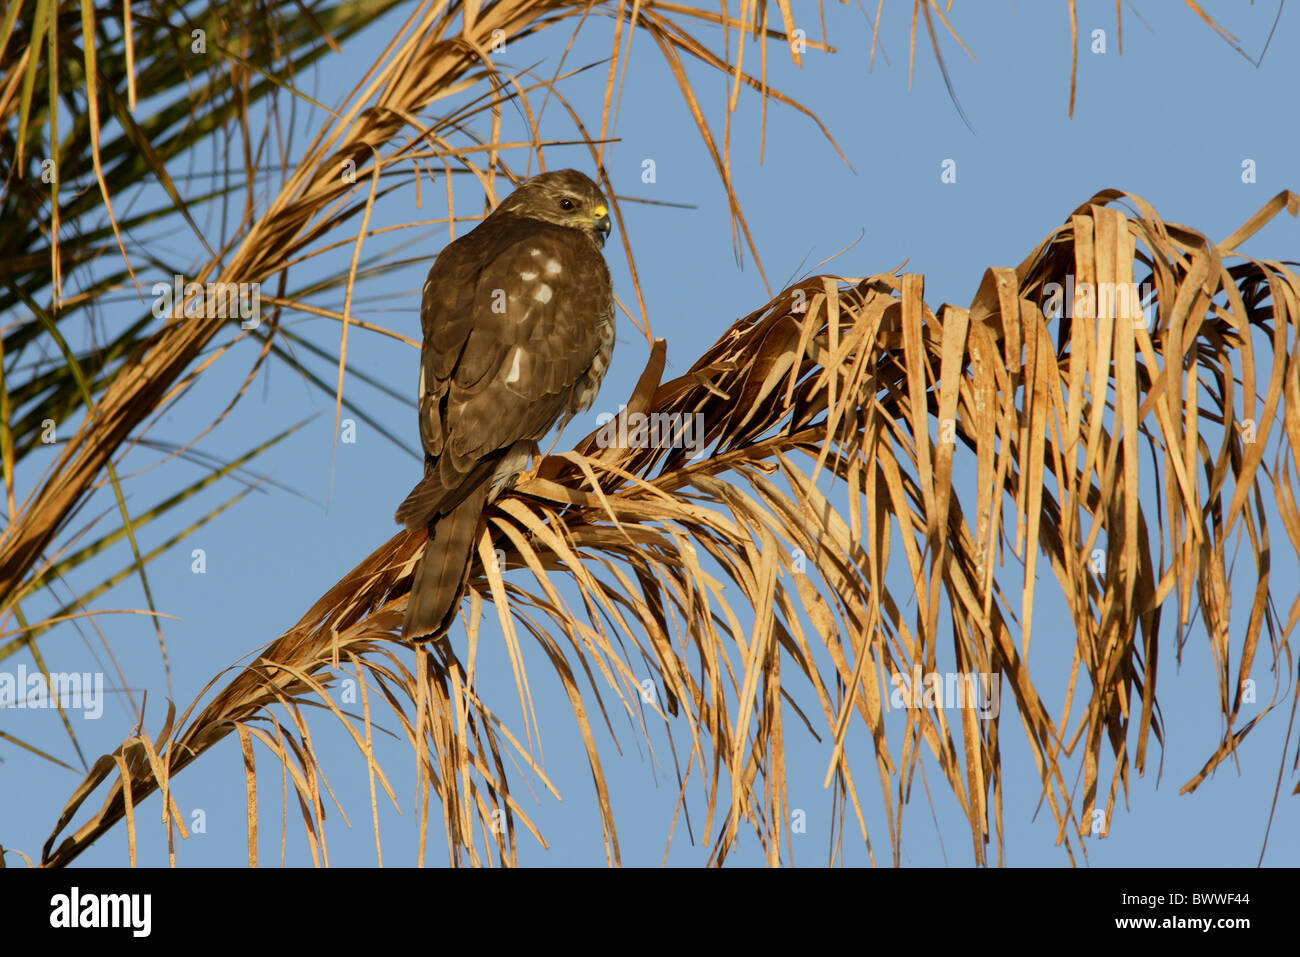 Levant Sparrowhawk (Accipiter brevipes) immature, perched in palm tree, Sharm-El-Sheikh, Sinai Peninsula, Egypt, - Stock Image